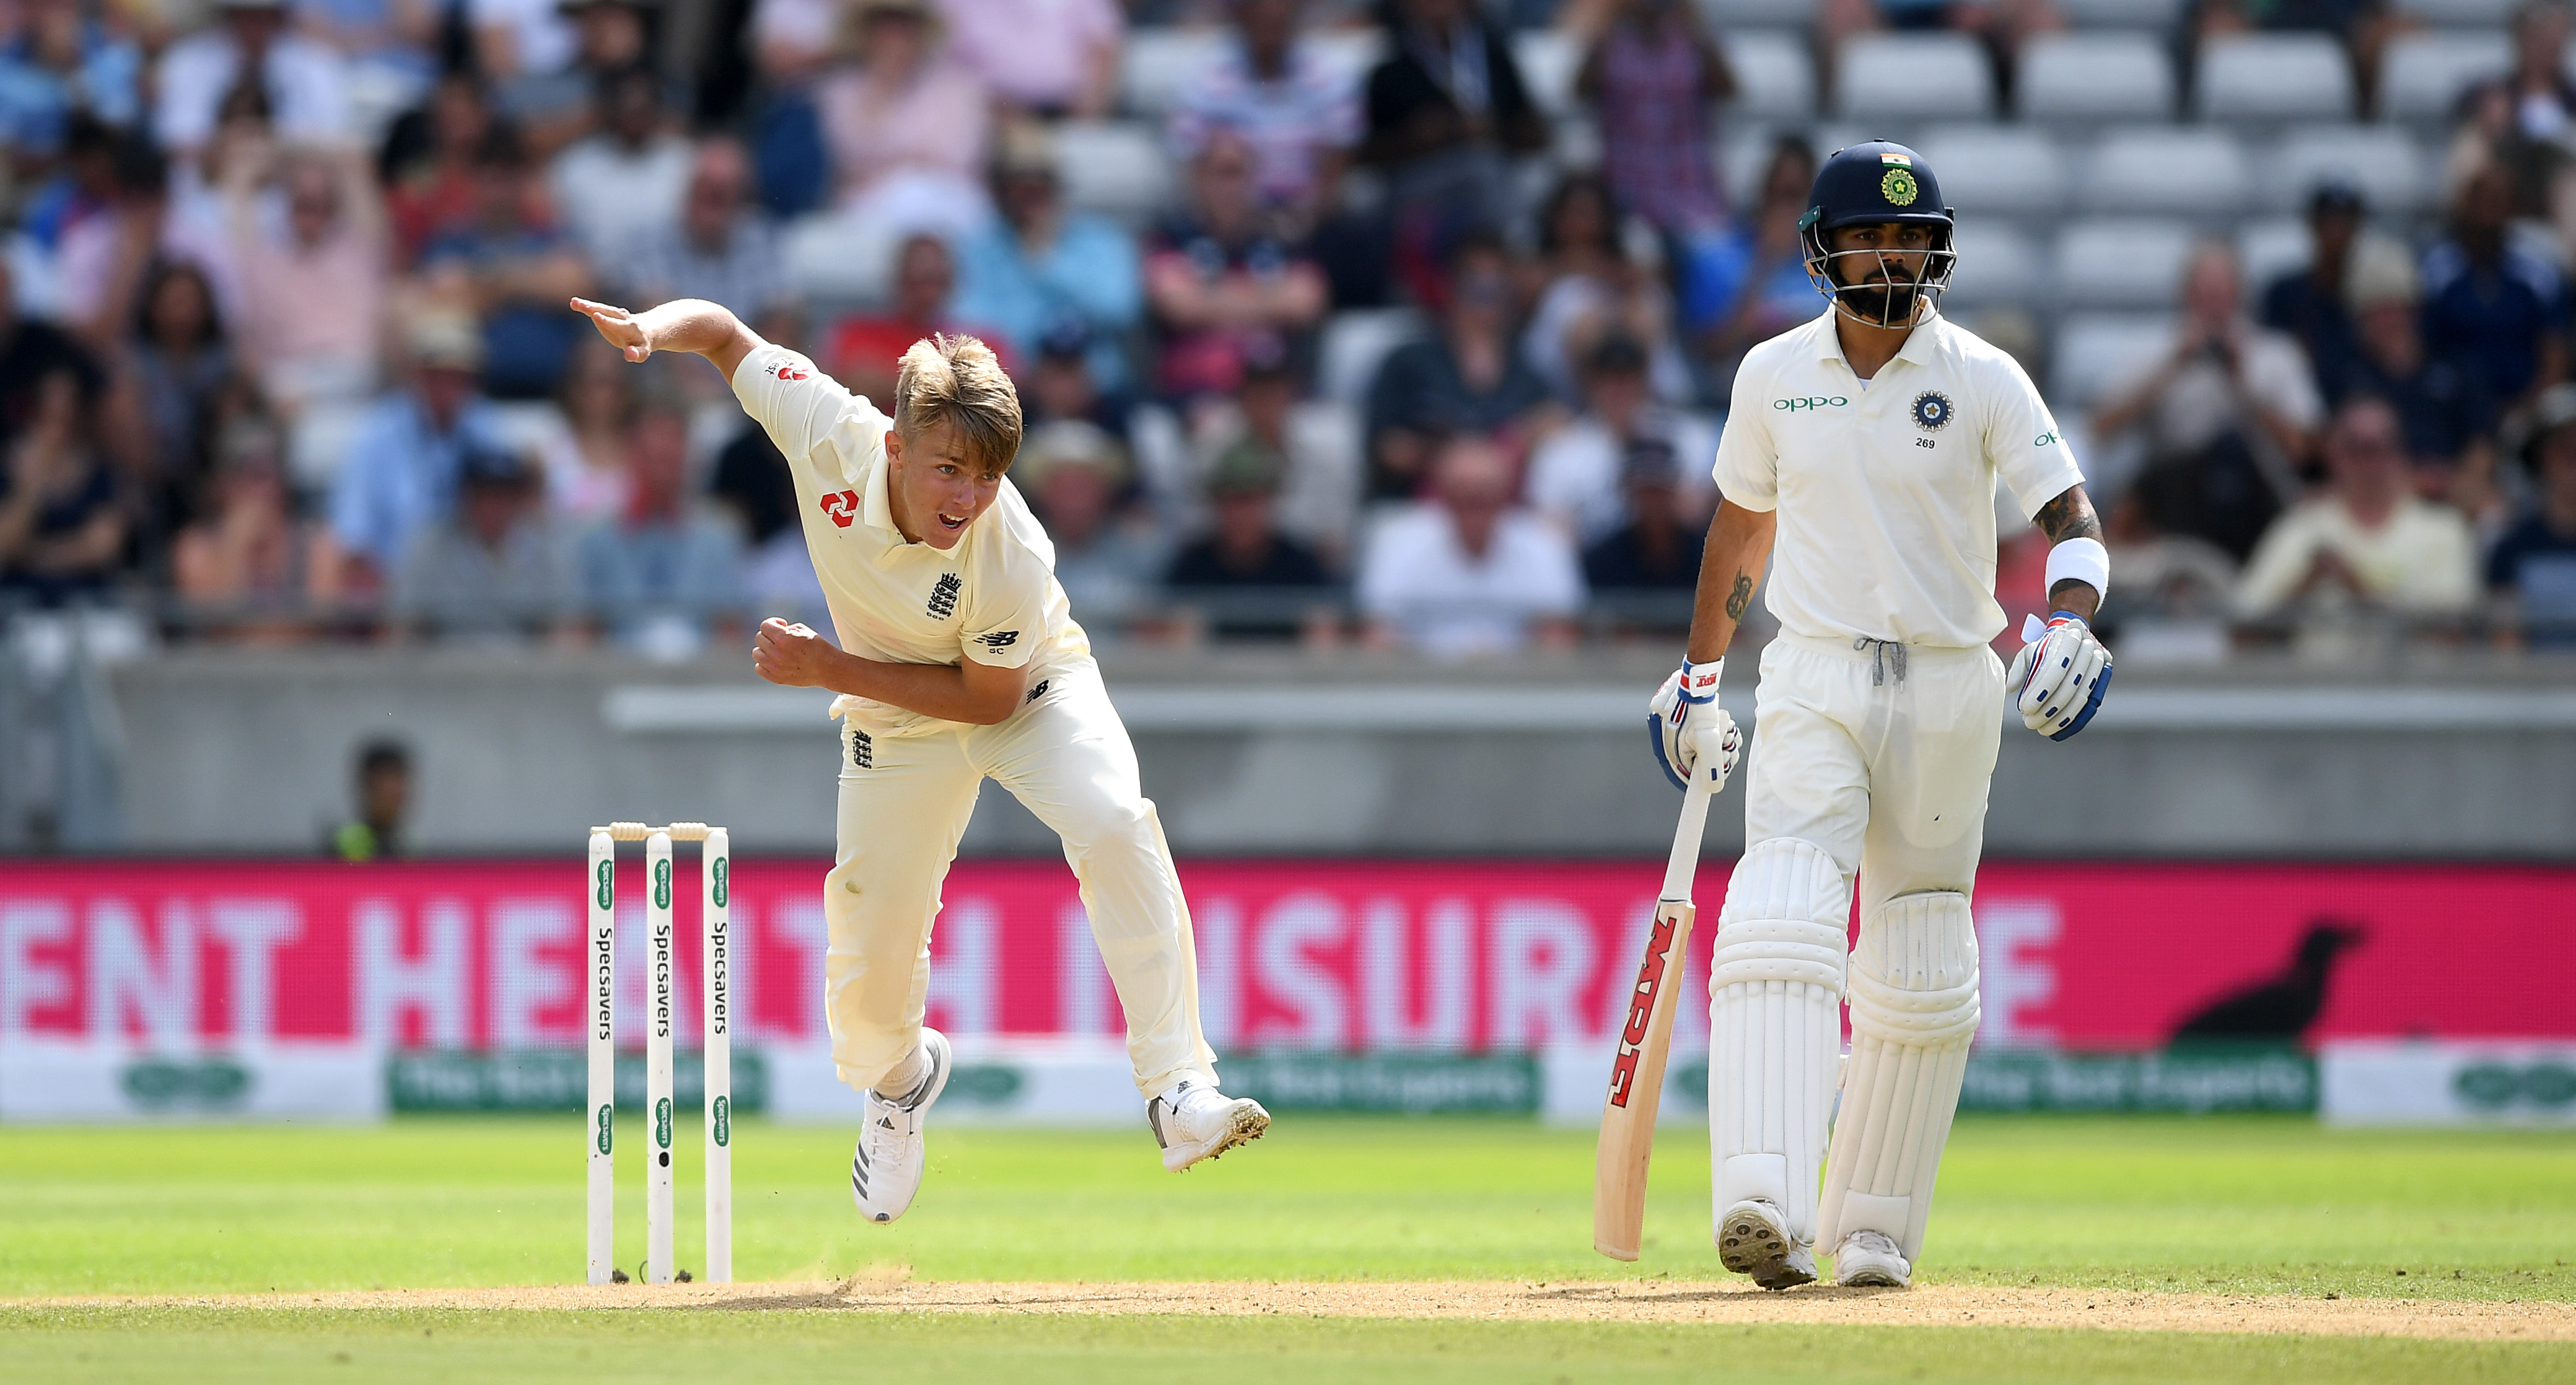 Curran reiterated the need for England to get Virat Kohli out as soon as possible on Day 4. (Getty)